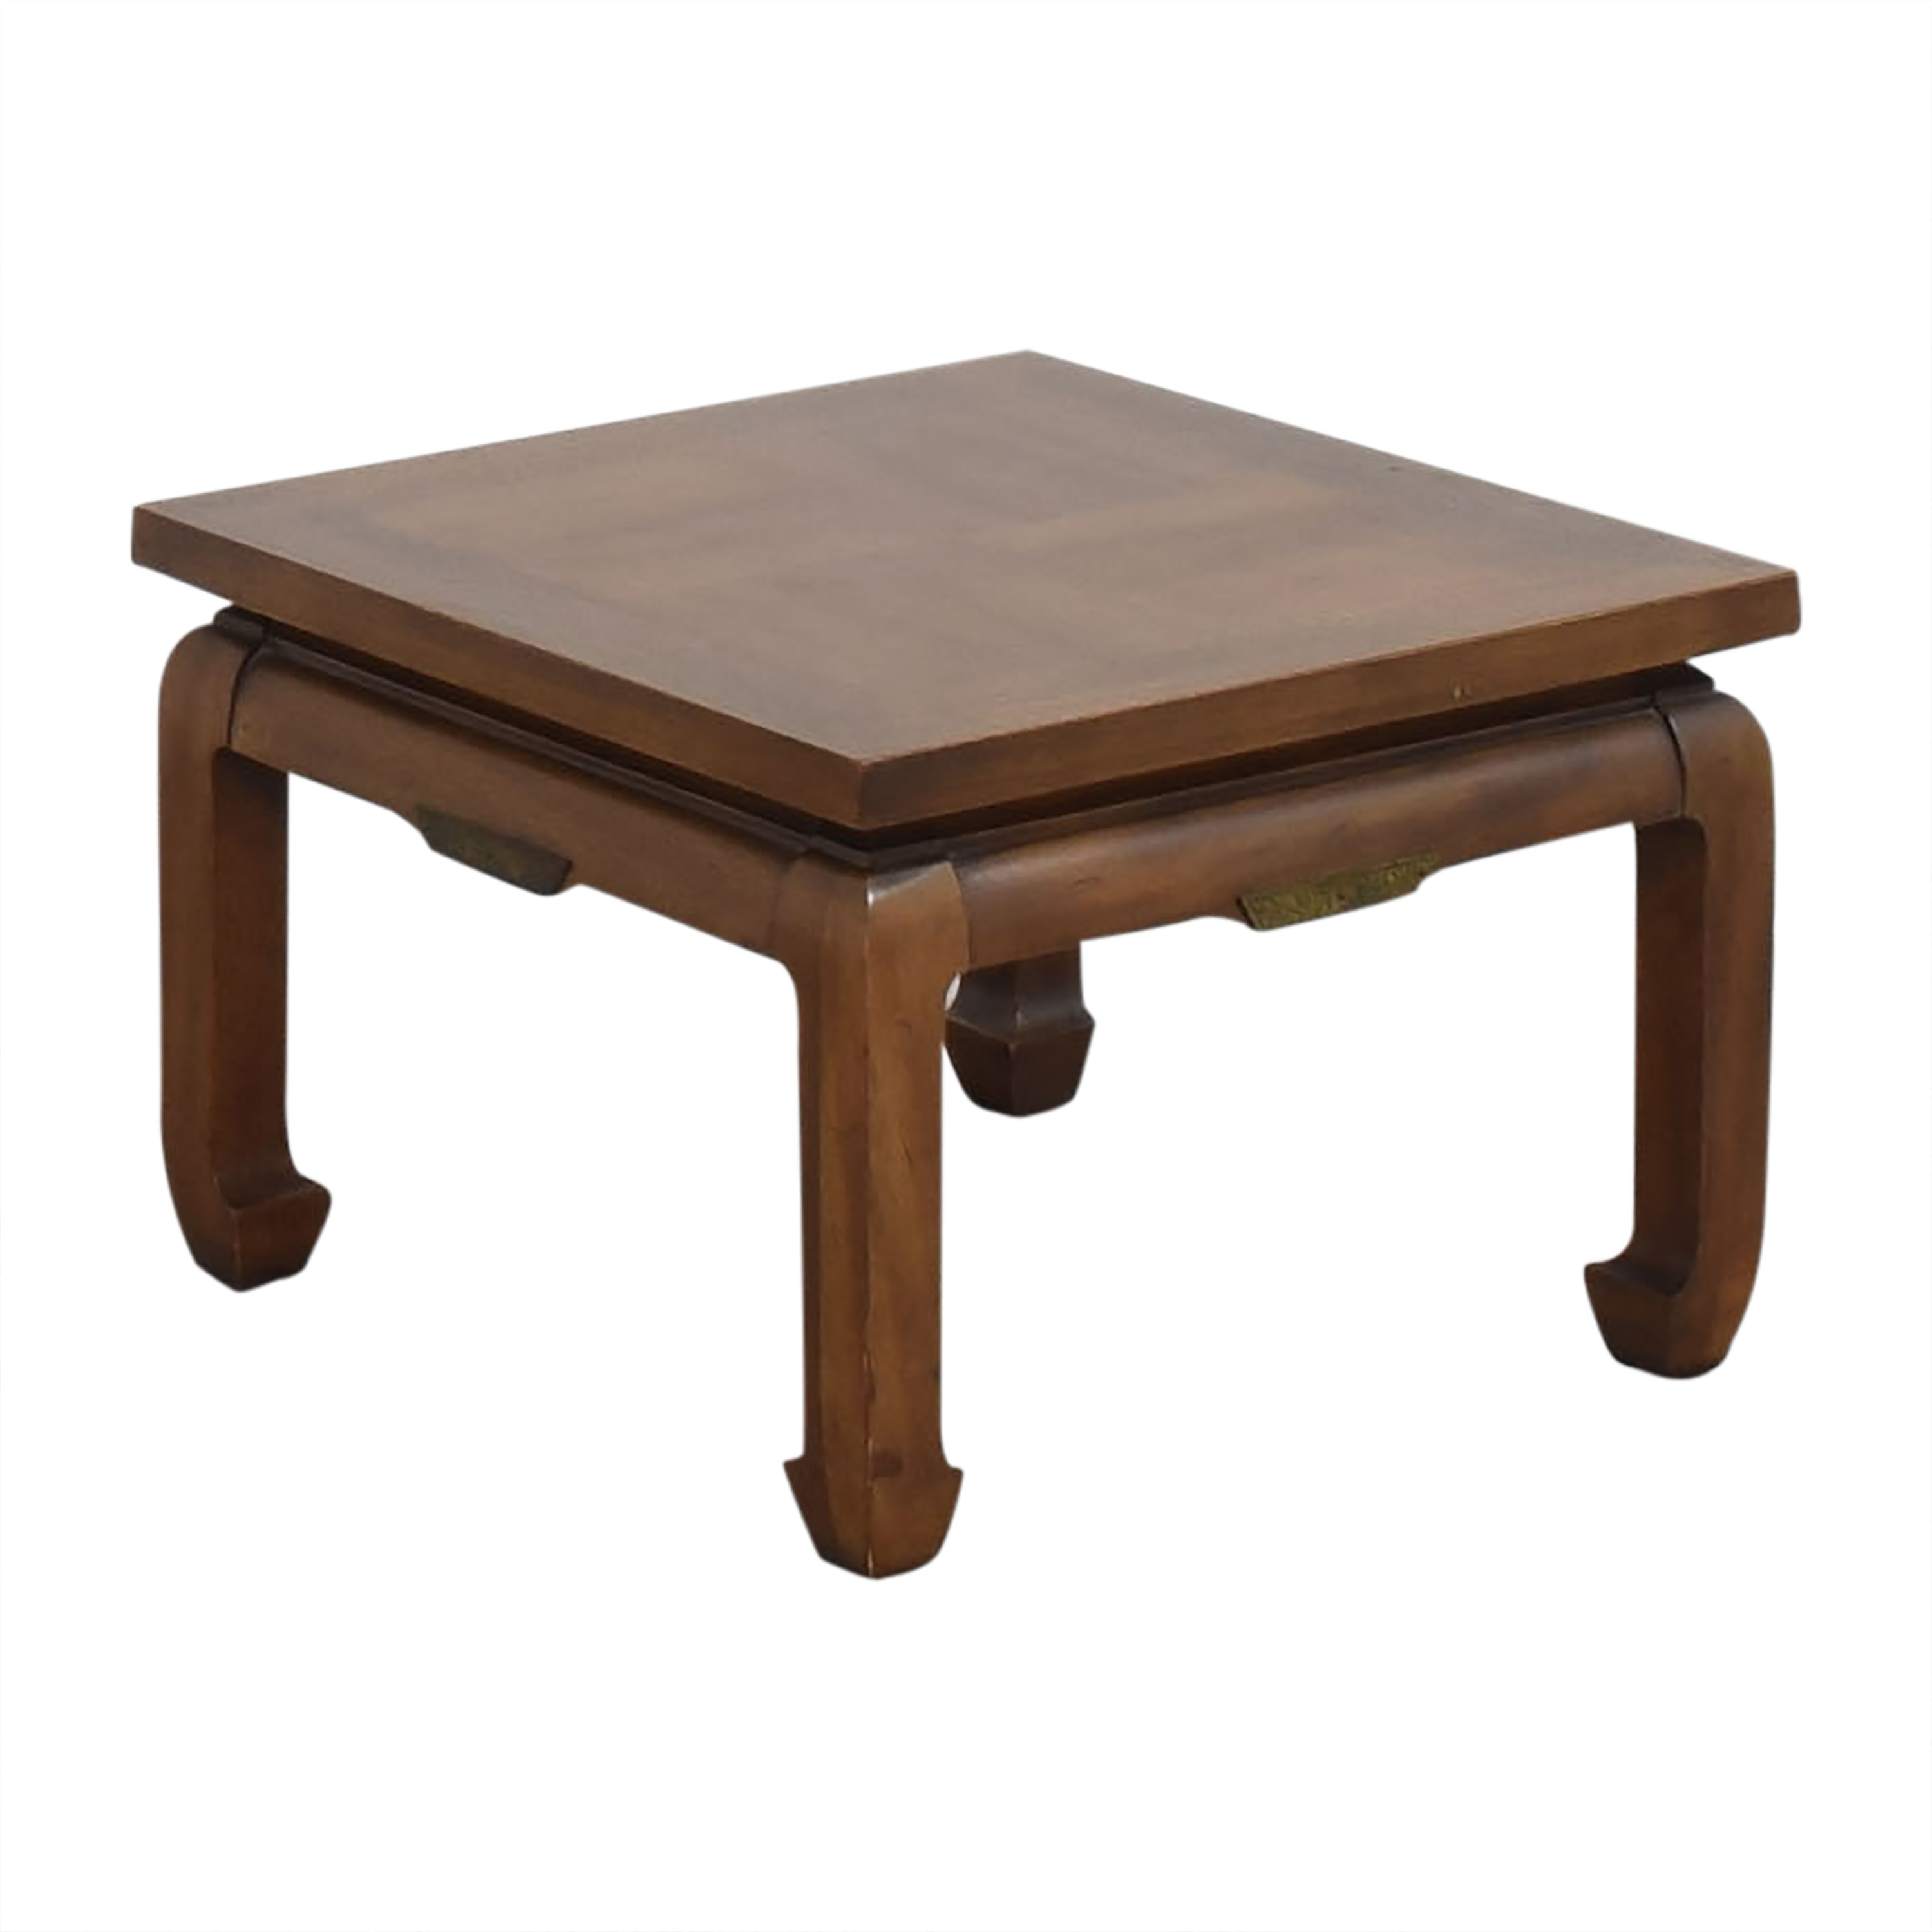 Century Furniture Century Furniture Square End Table  coupon